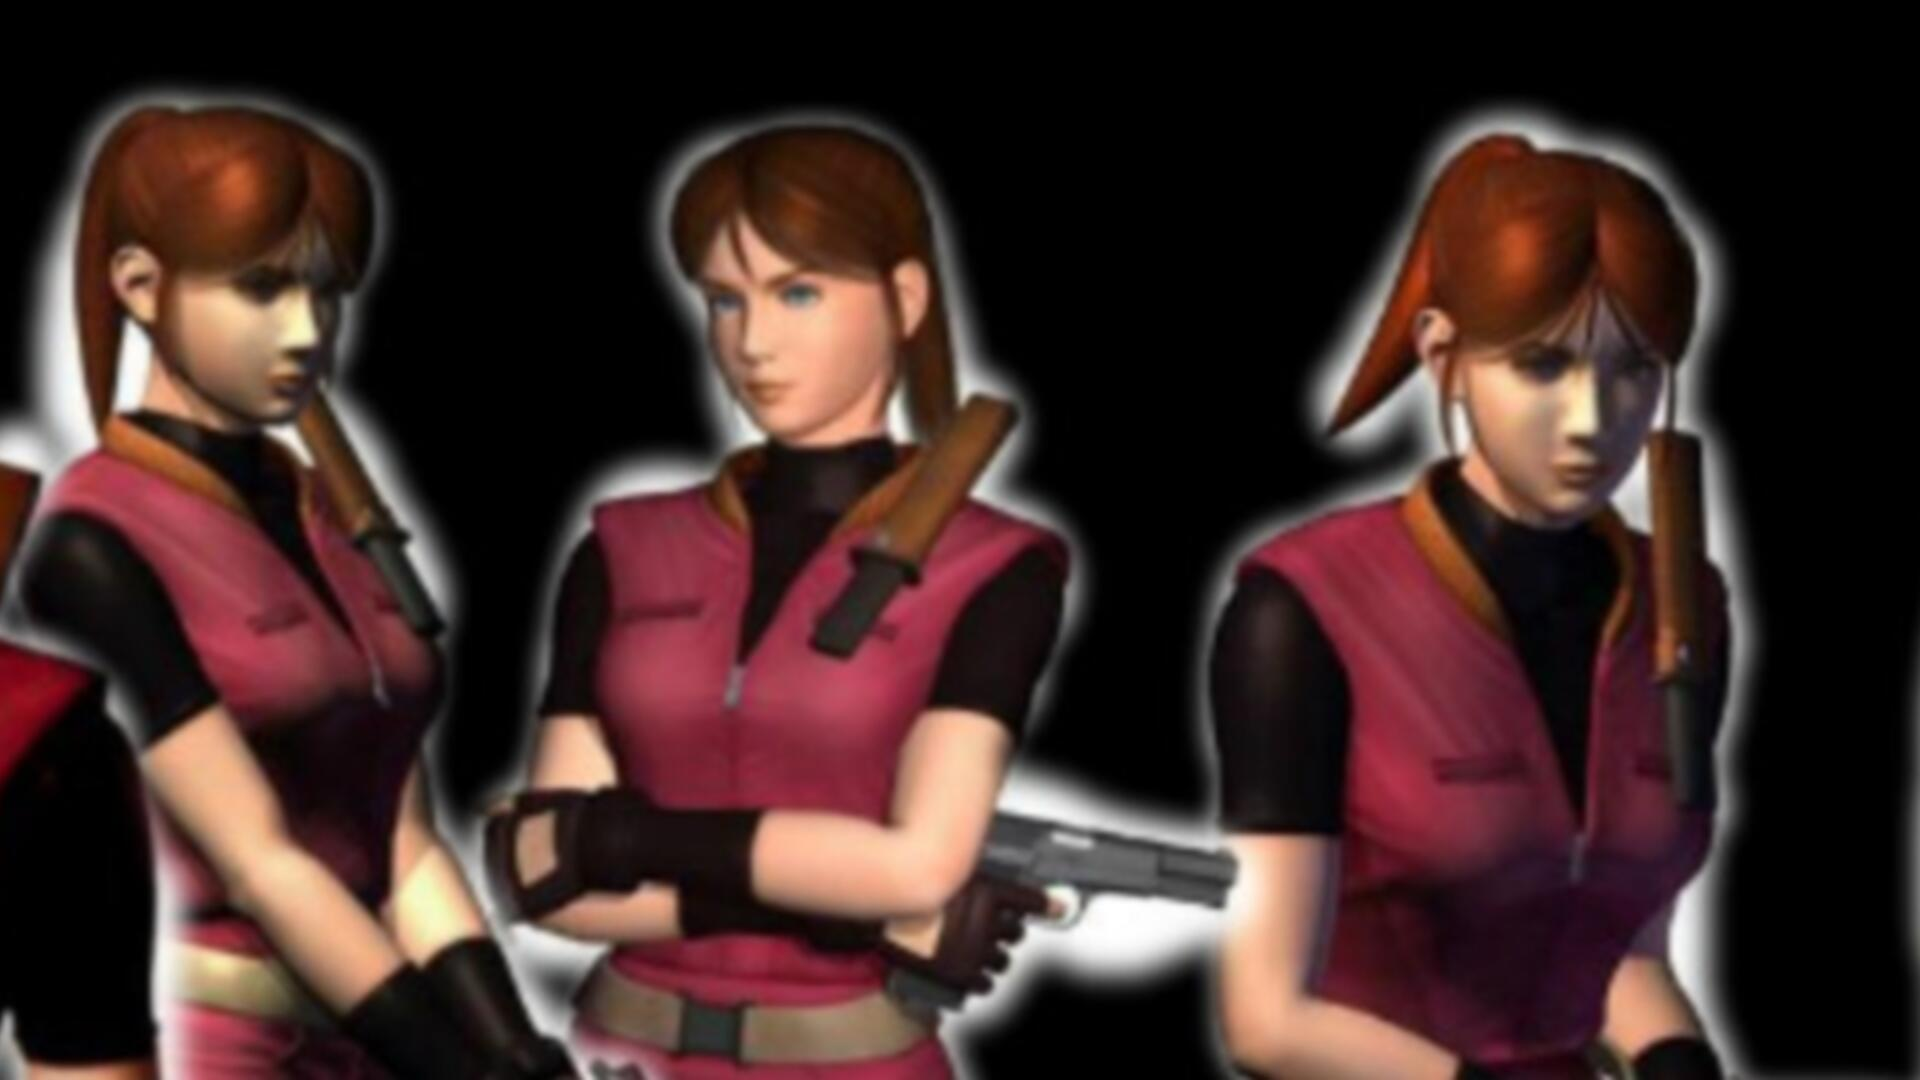 This is What a Resident Evil 2 Remake Might Look Like